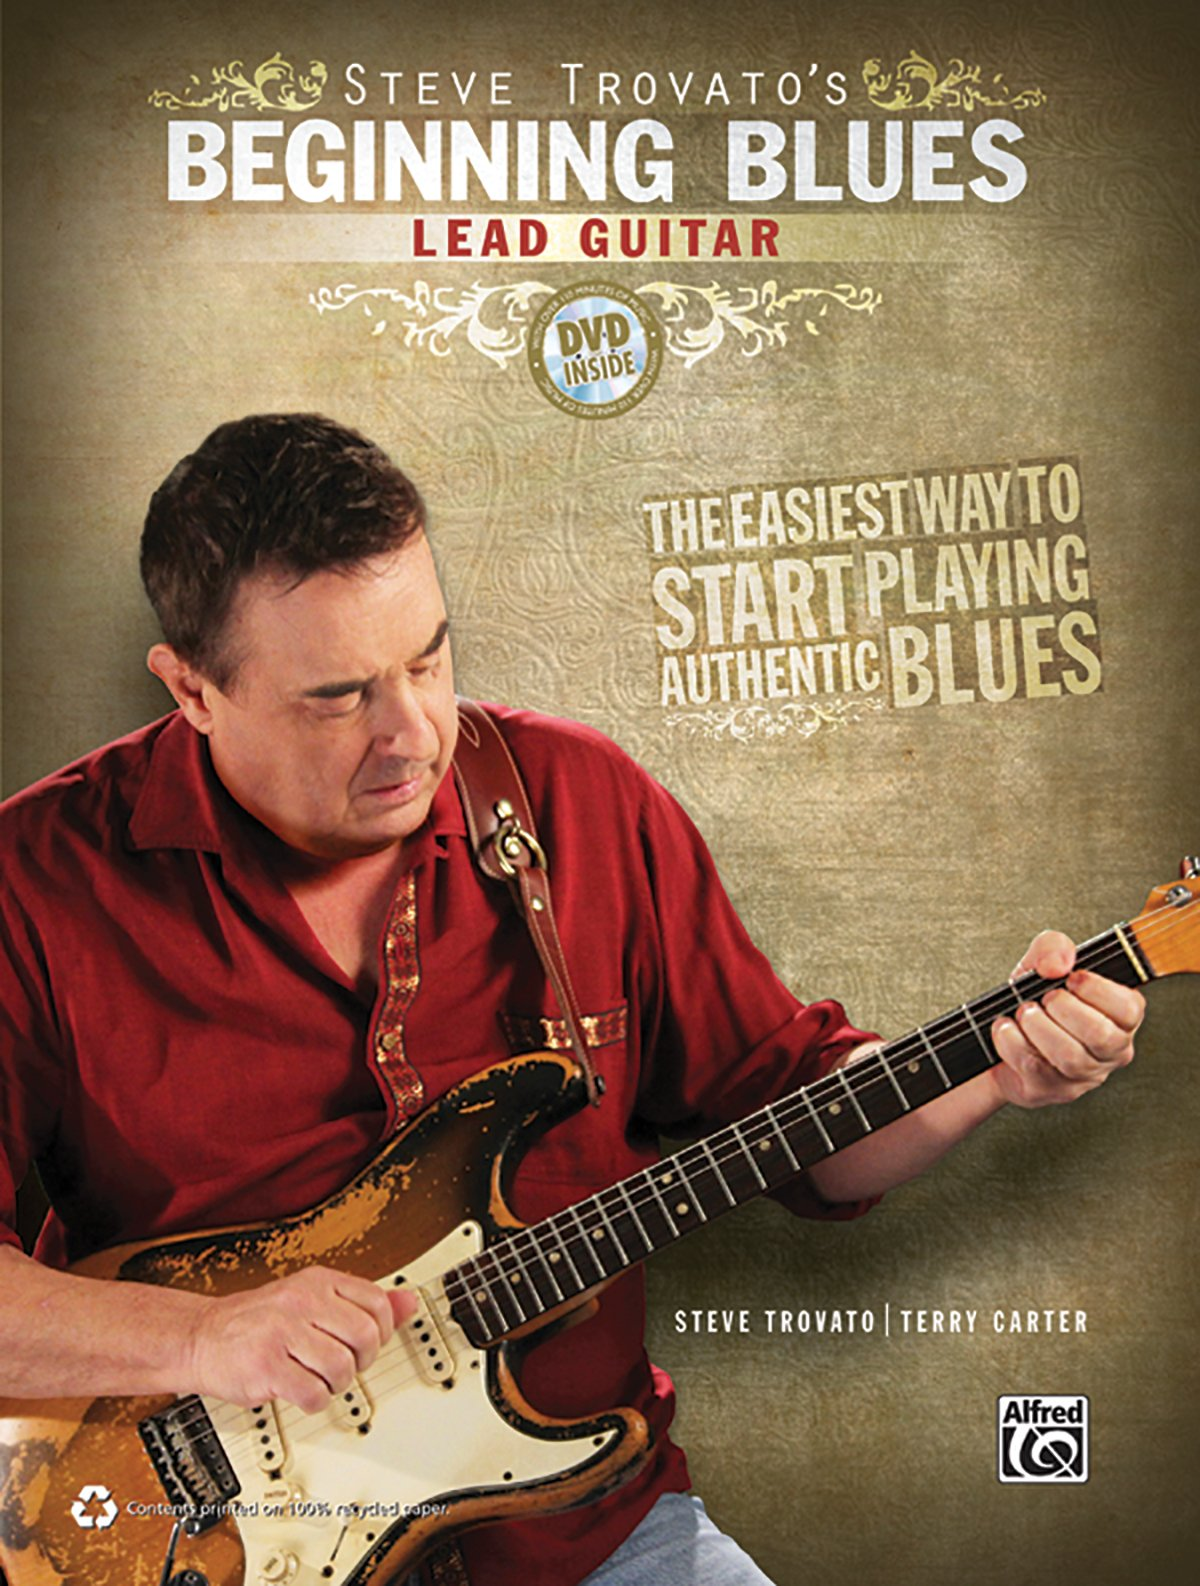 Beginning Blues: Lead Guitar - Whether you are a beginning guitarist or an advanced player just getting into the blues, this book and DVD kit will get you playing authentic blues lead guitar right away. Start with a brief explanation of soloing techniques---such as slides, hammer-ons, pull-offs, bending, vibrato, rakes, and more---then dive right in by playing 18 great blues solos in the styles of legends like Eric Clapton, Albert Collins, Jimi Hendrix, Stevie Ray Vaughan, Albert King, and B. B. King. On the DVD, each solo is dissected and clearly explained by your host, Steve Trovato, and MP3 accompaniment tracks are also included.